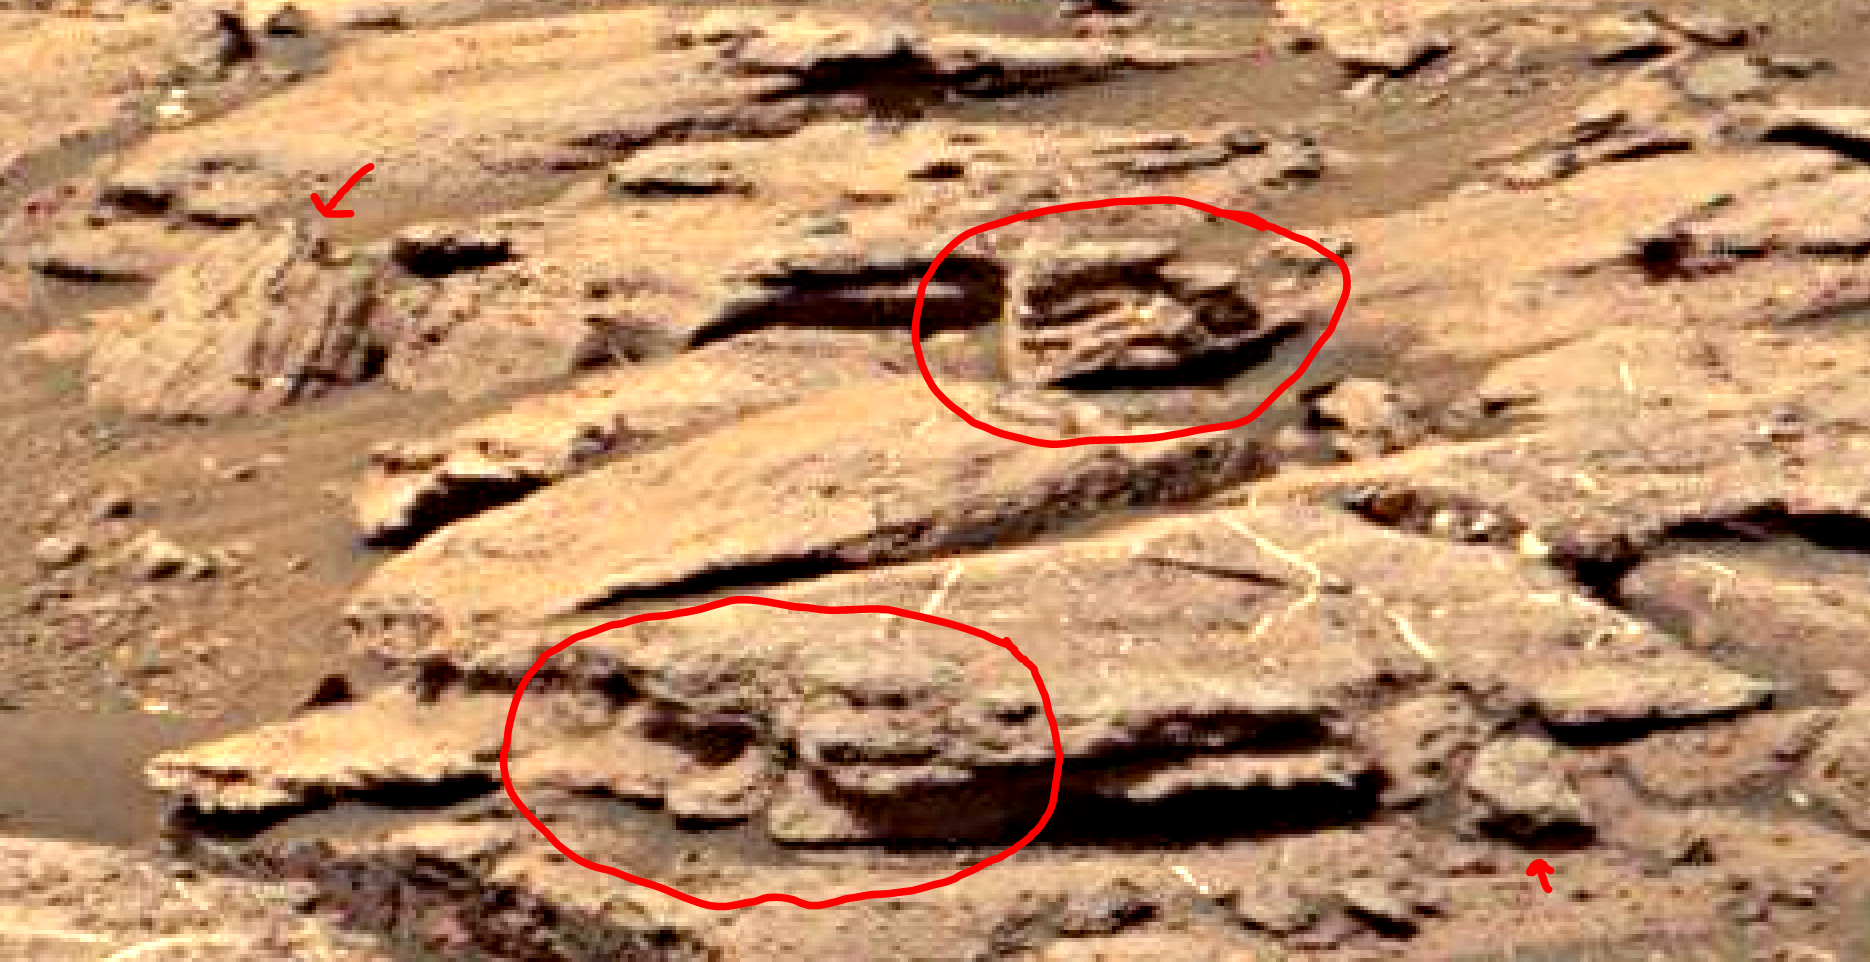 mars-sol-1493-anomaly-artifacts-9-was-life-on-mars